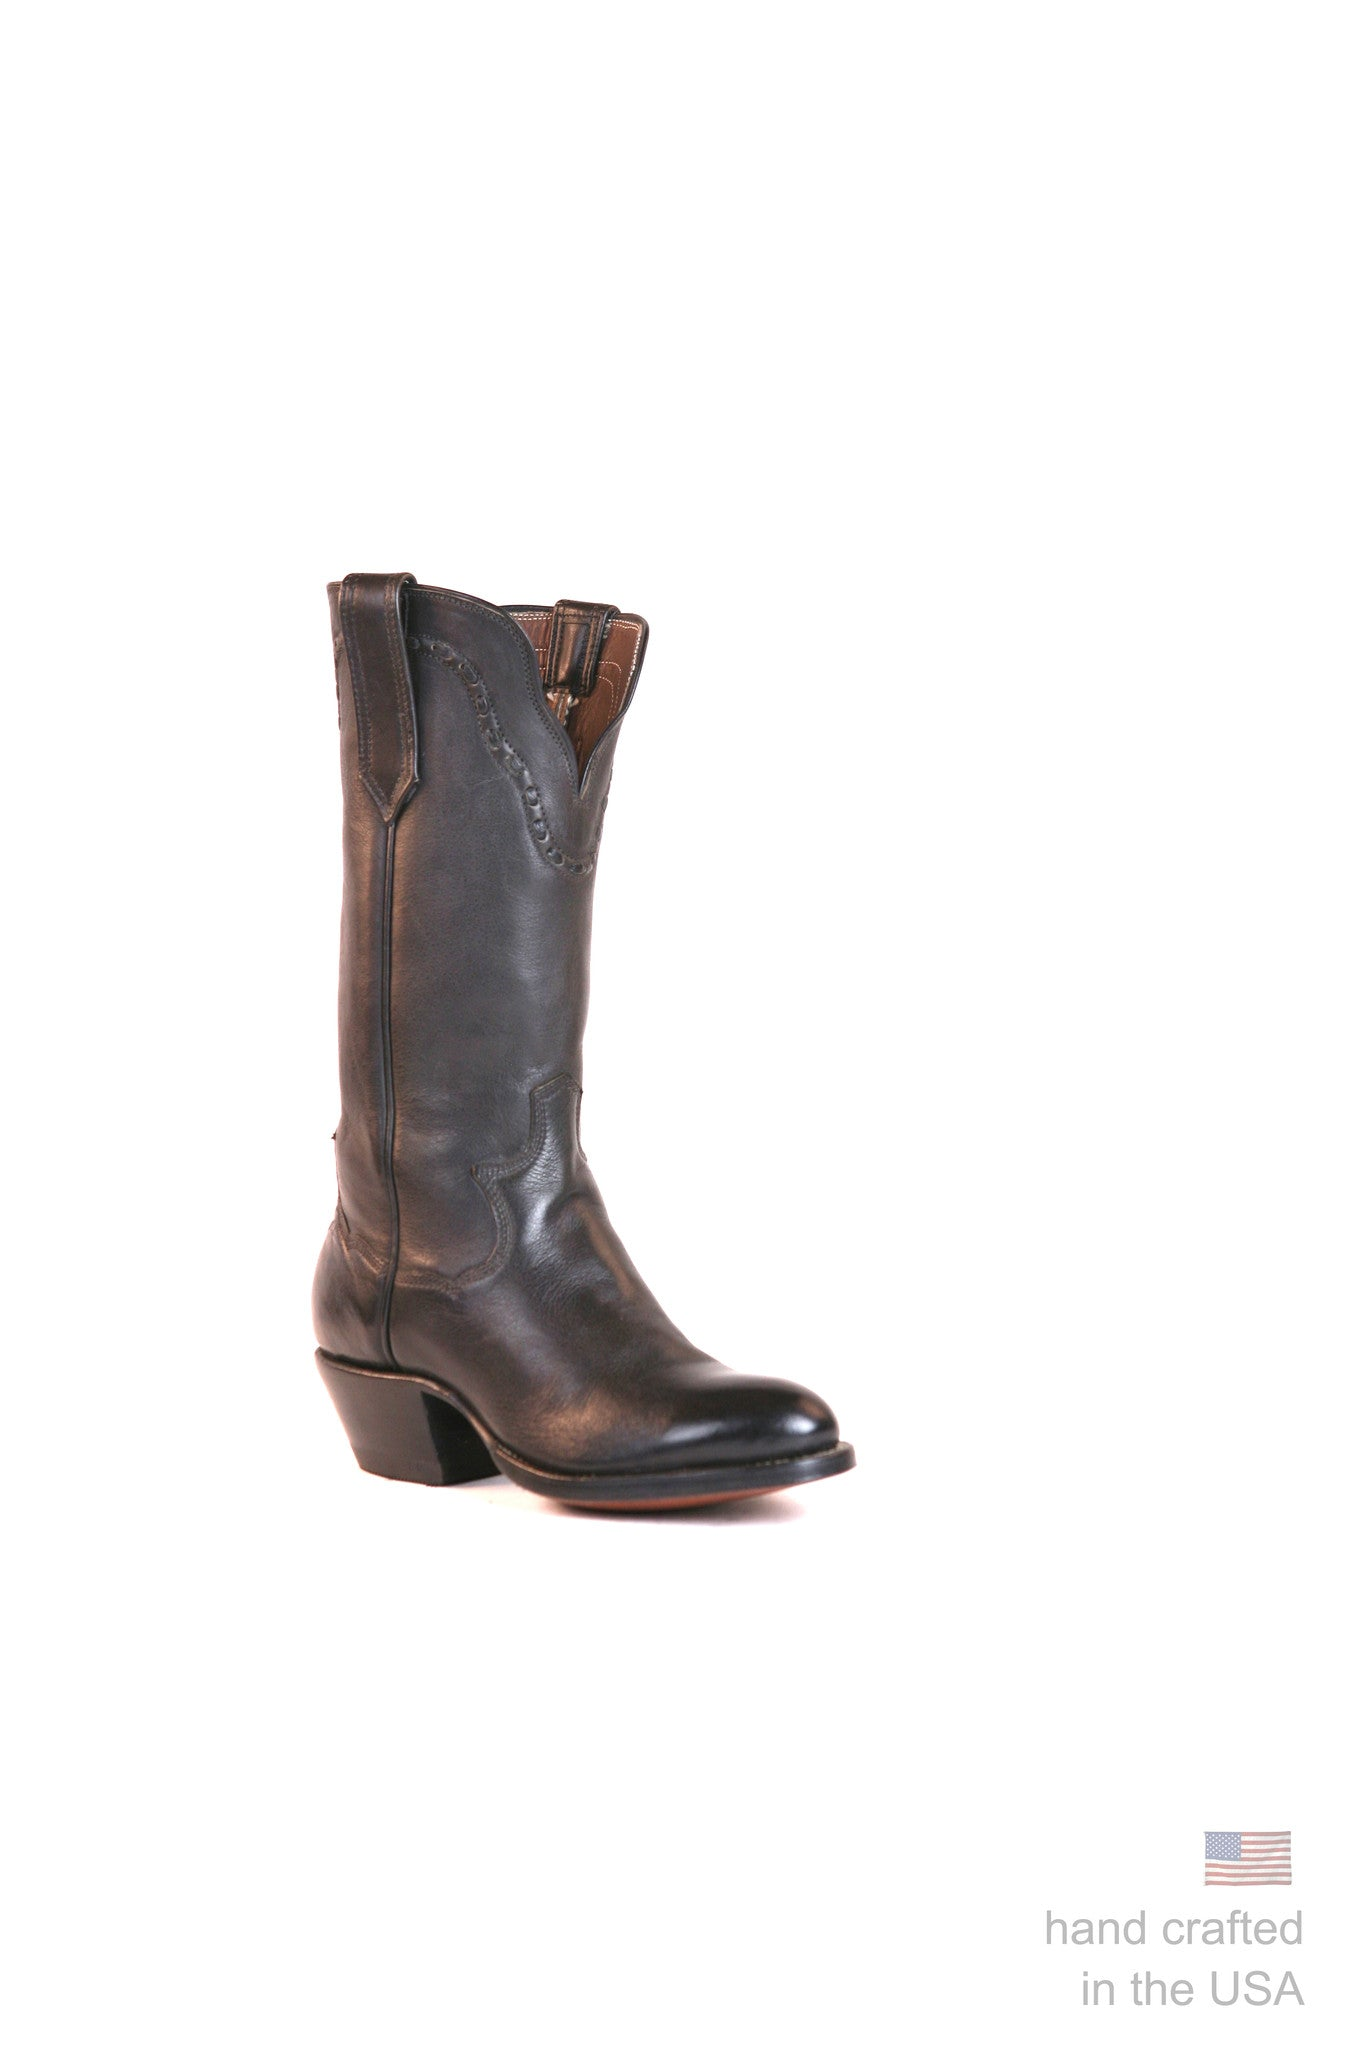 Singles: Boot 0011: Size 4.5 C